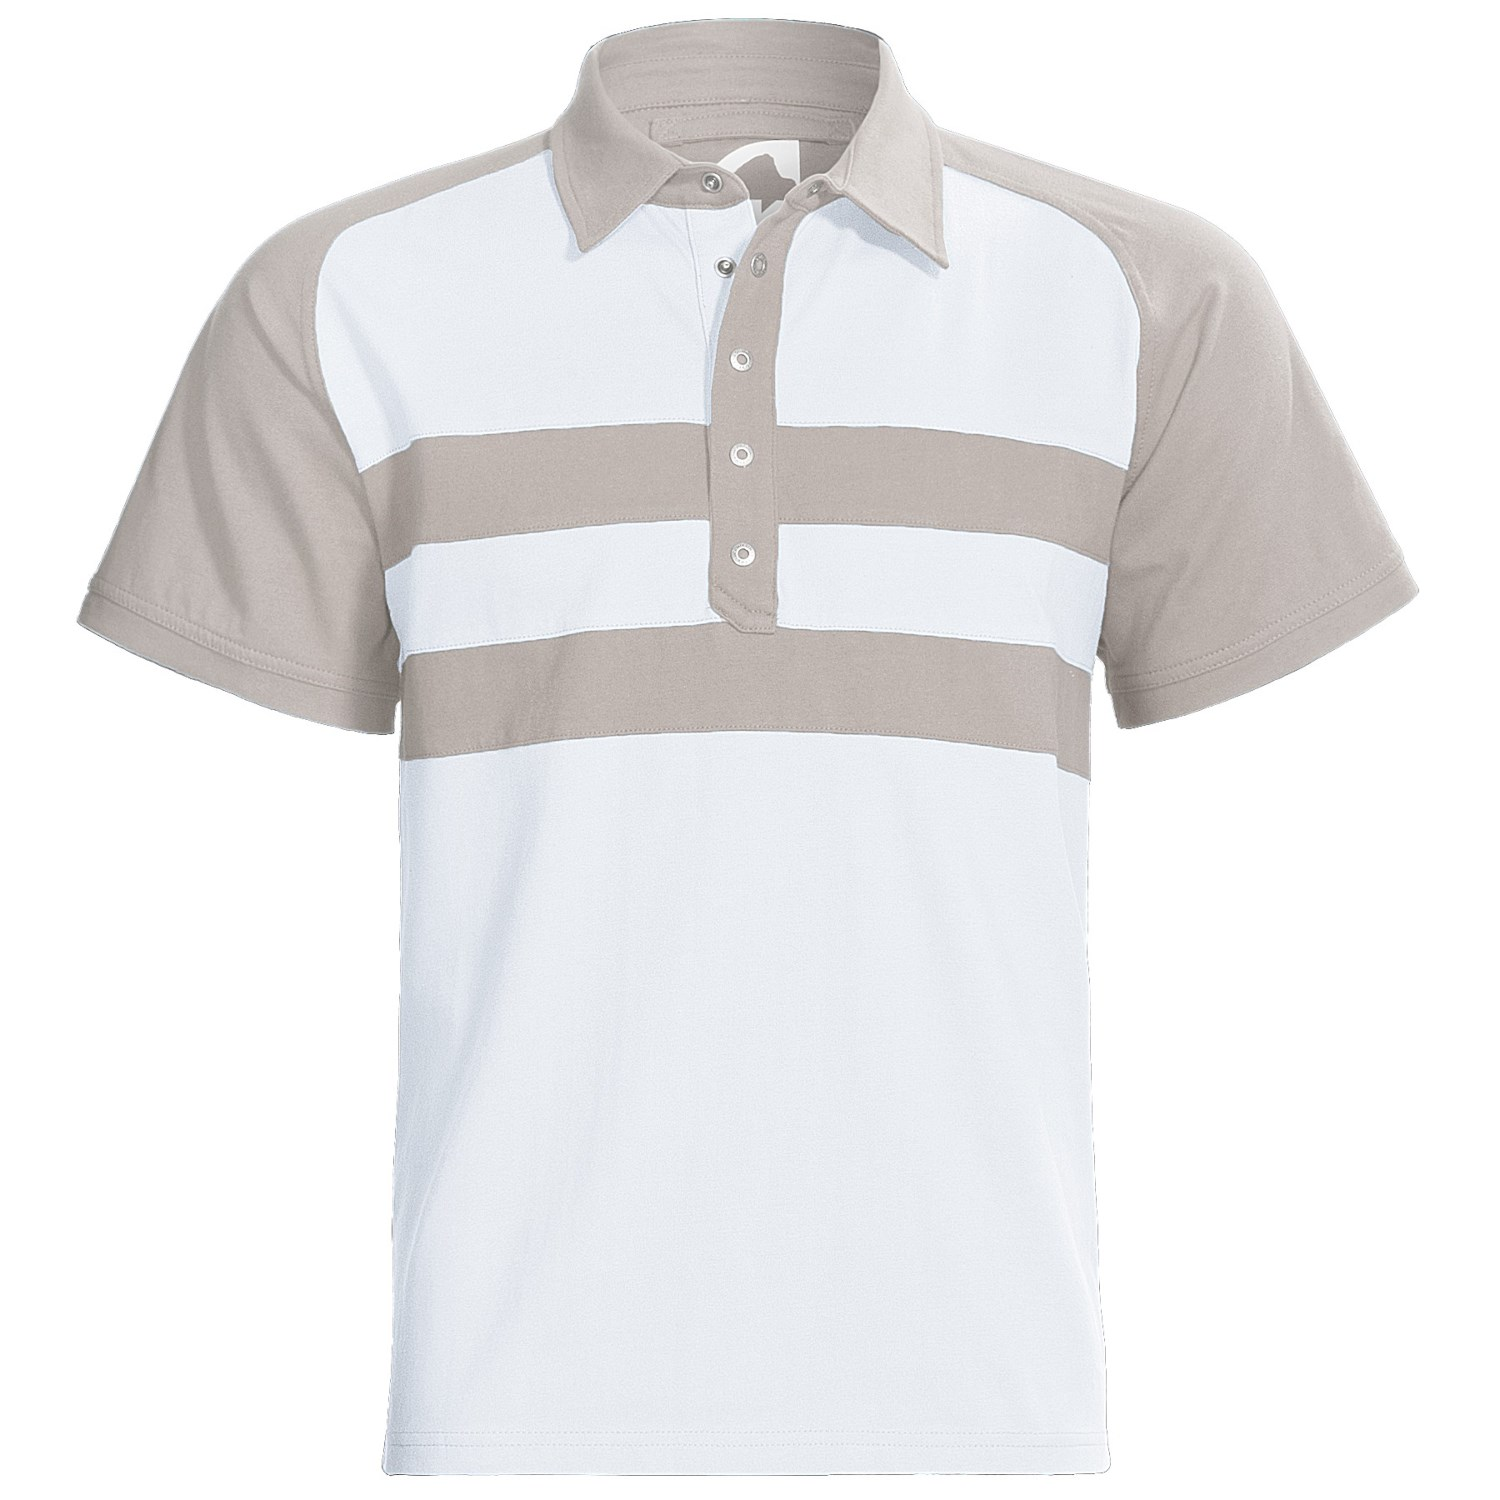 Mountain Khakis Fairway Polo Shirt Short Sleeve For Men